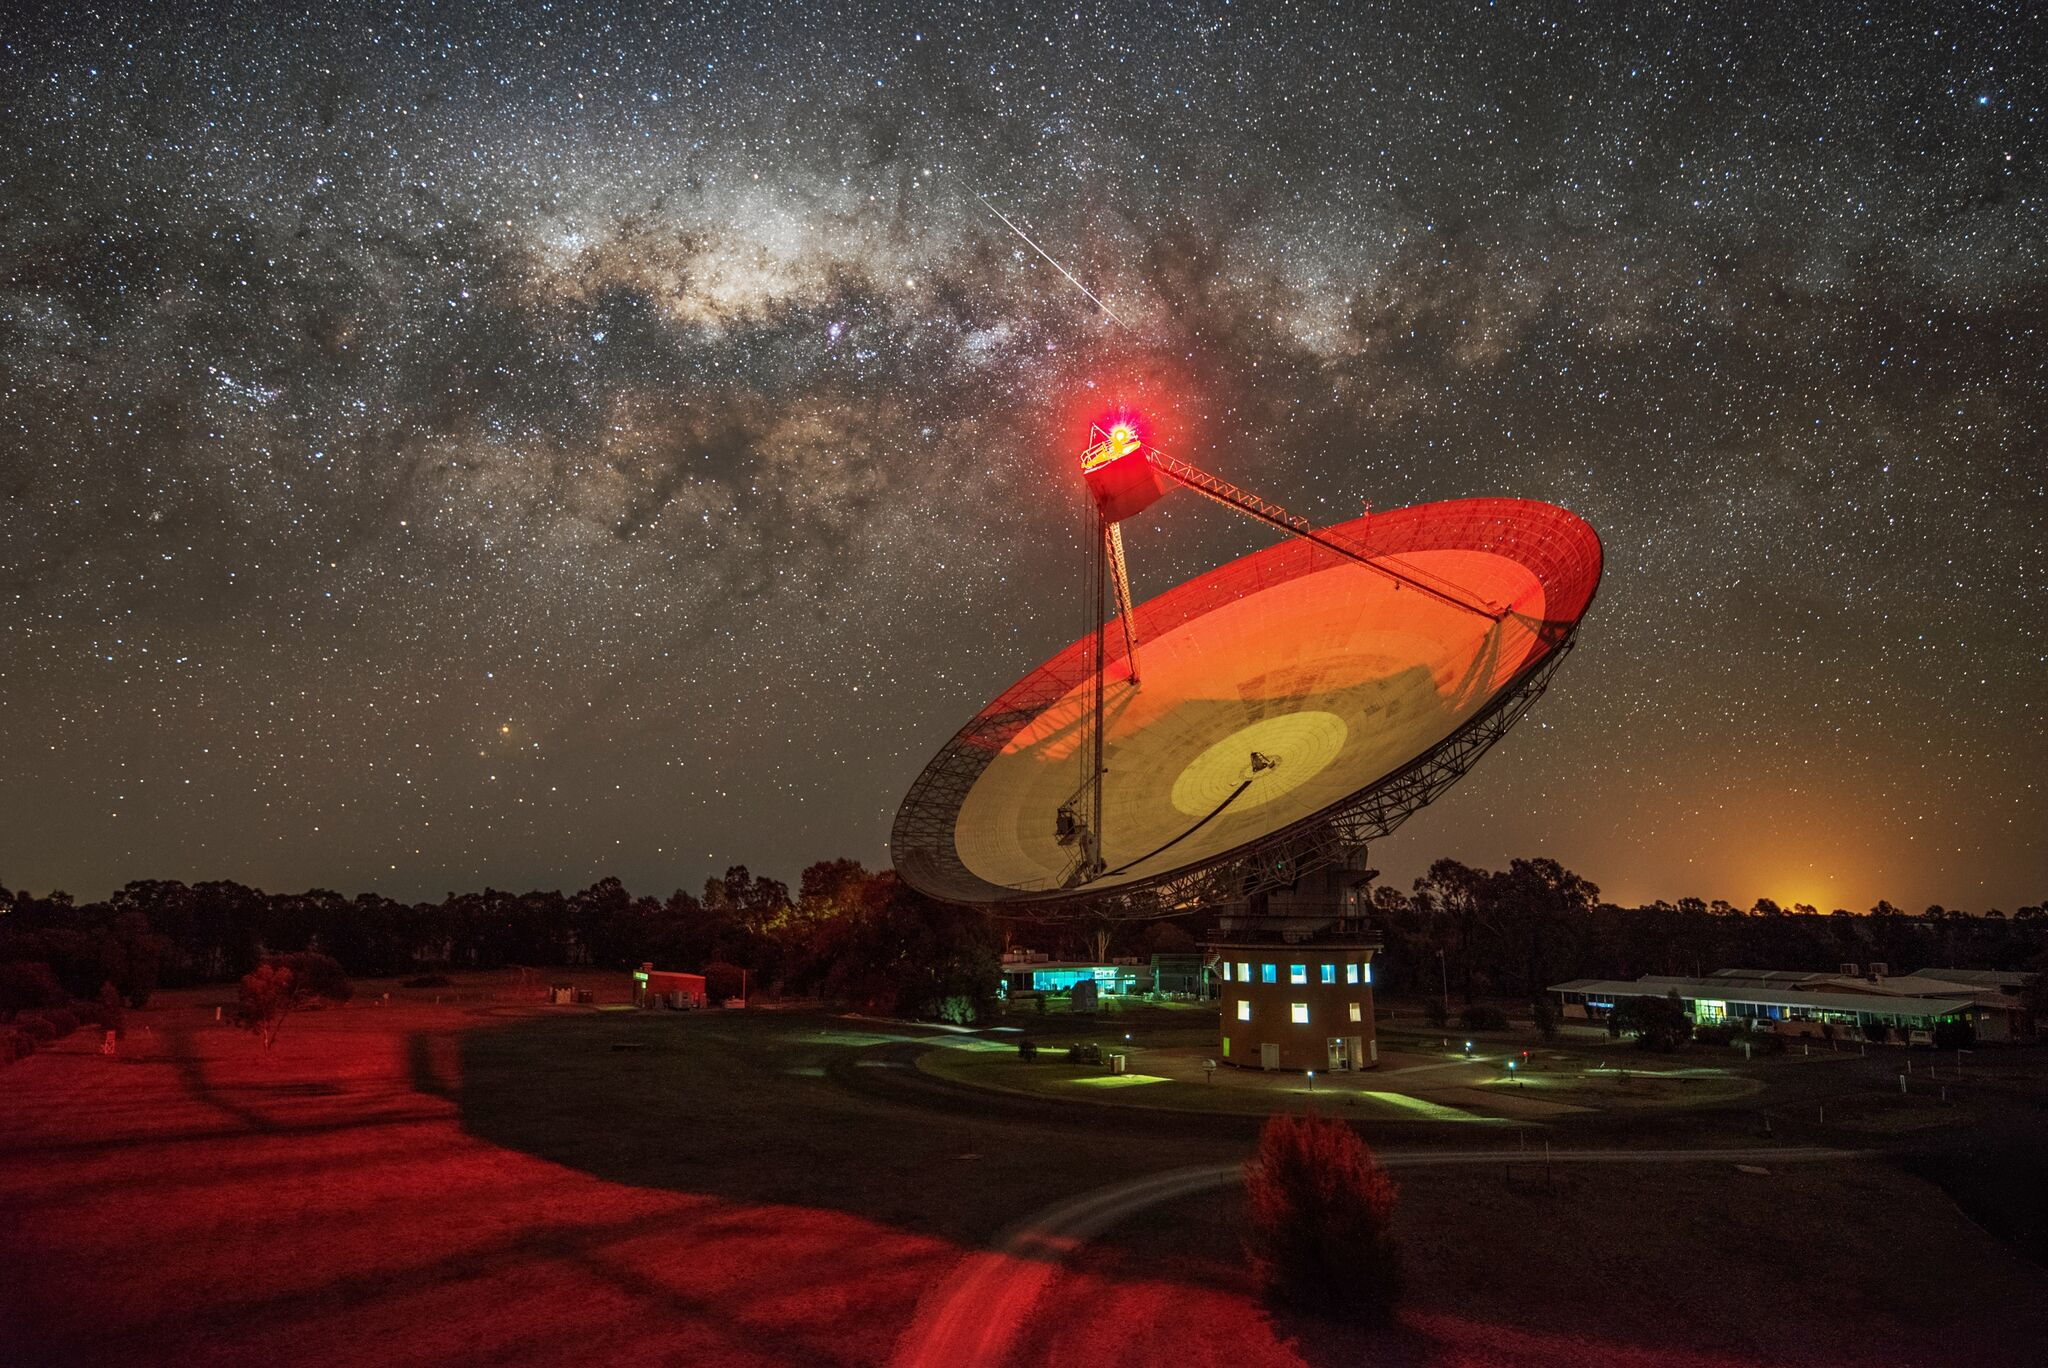 Radio telescope at night illuminated with red light under a starry sky.